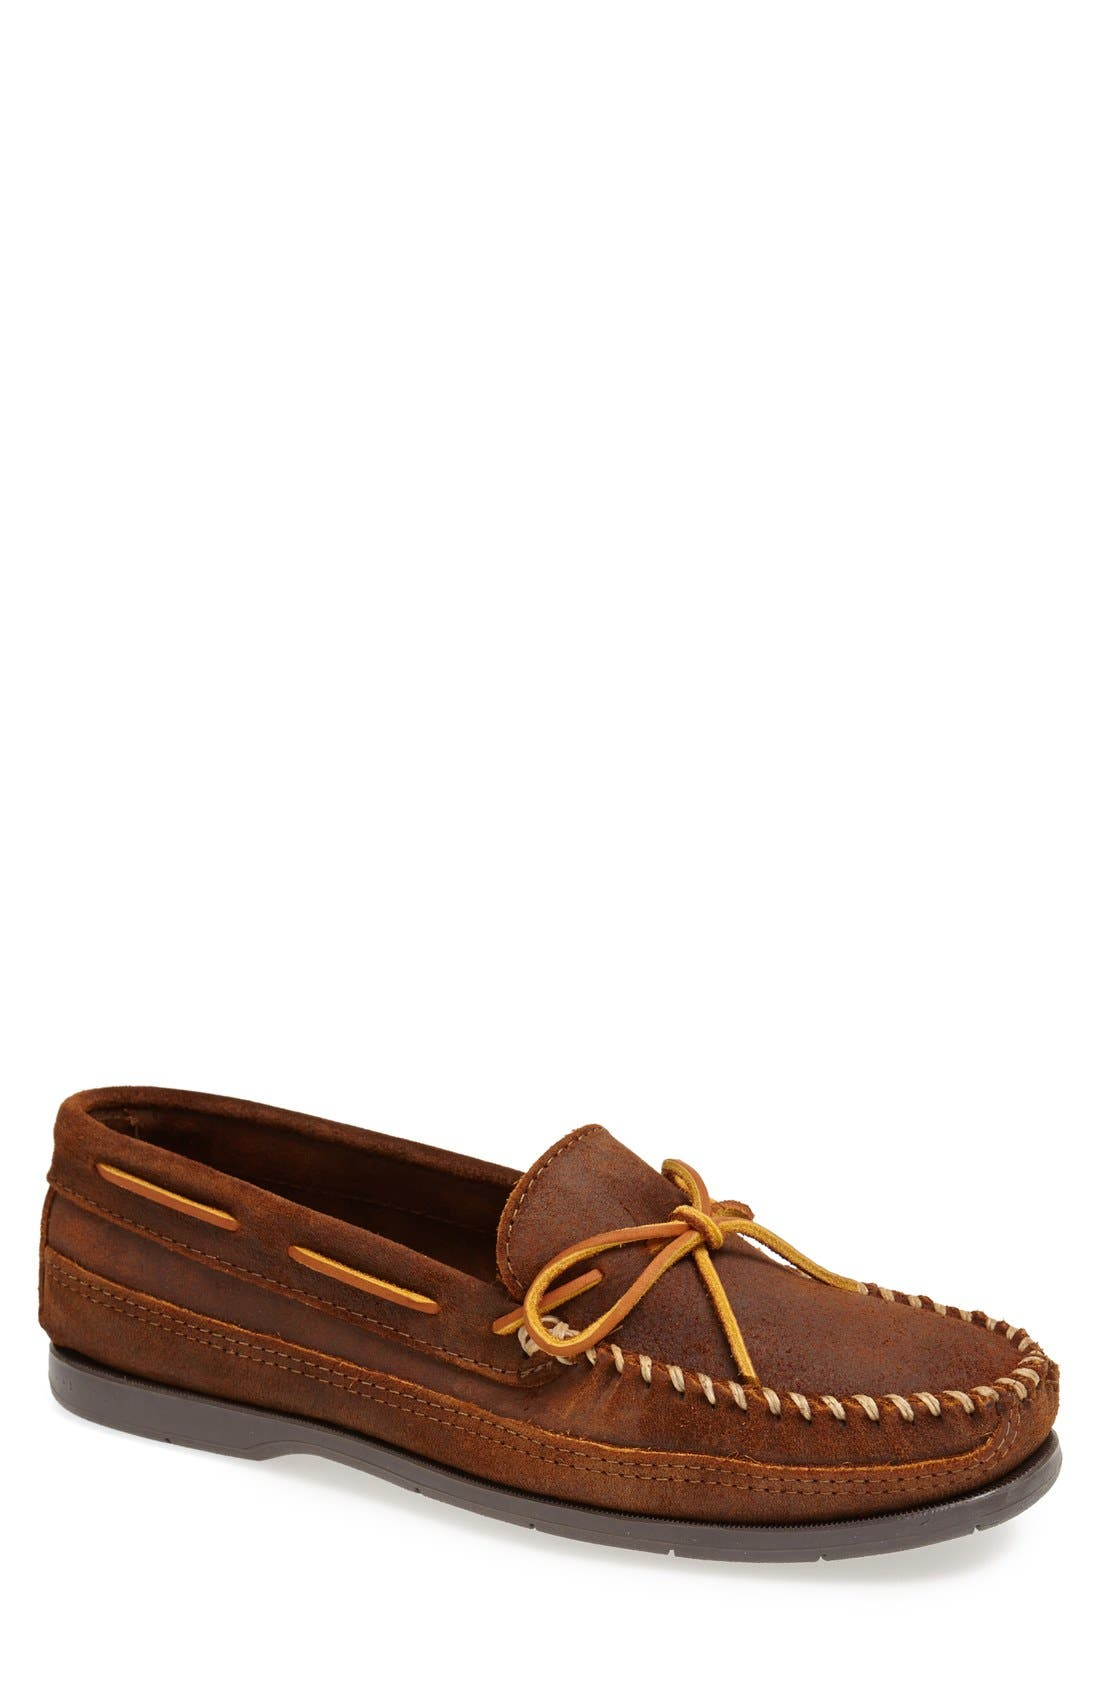 Leather Moccasin,                         Main,                         color, 212